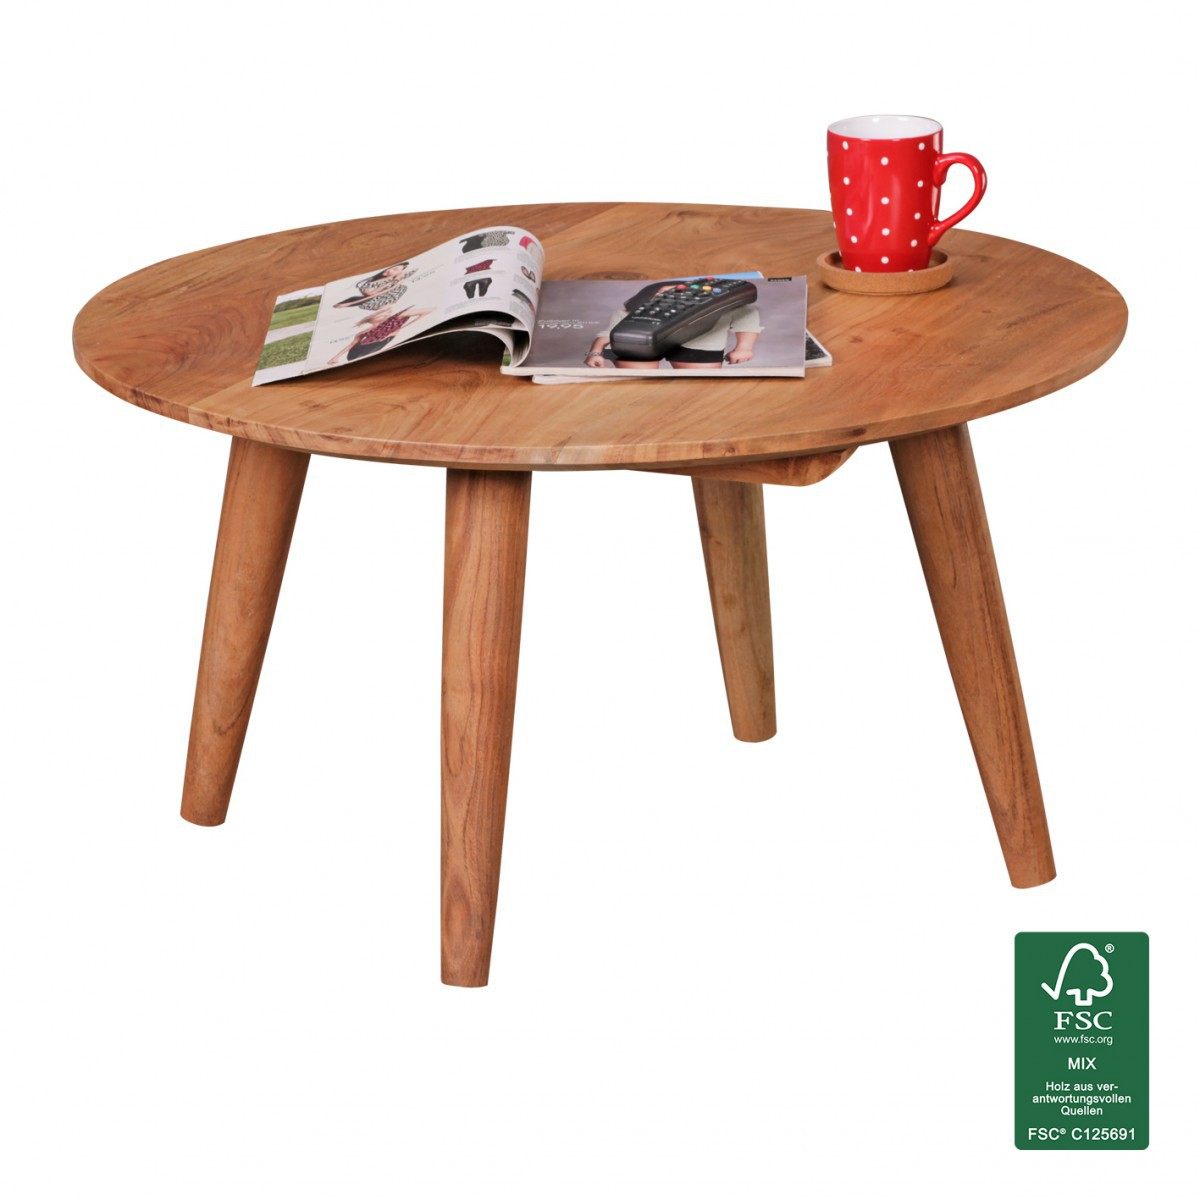 Finebuy table basse en bois massif acacia table basse - Table basse relevable ronde ...